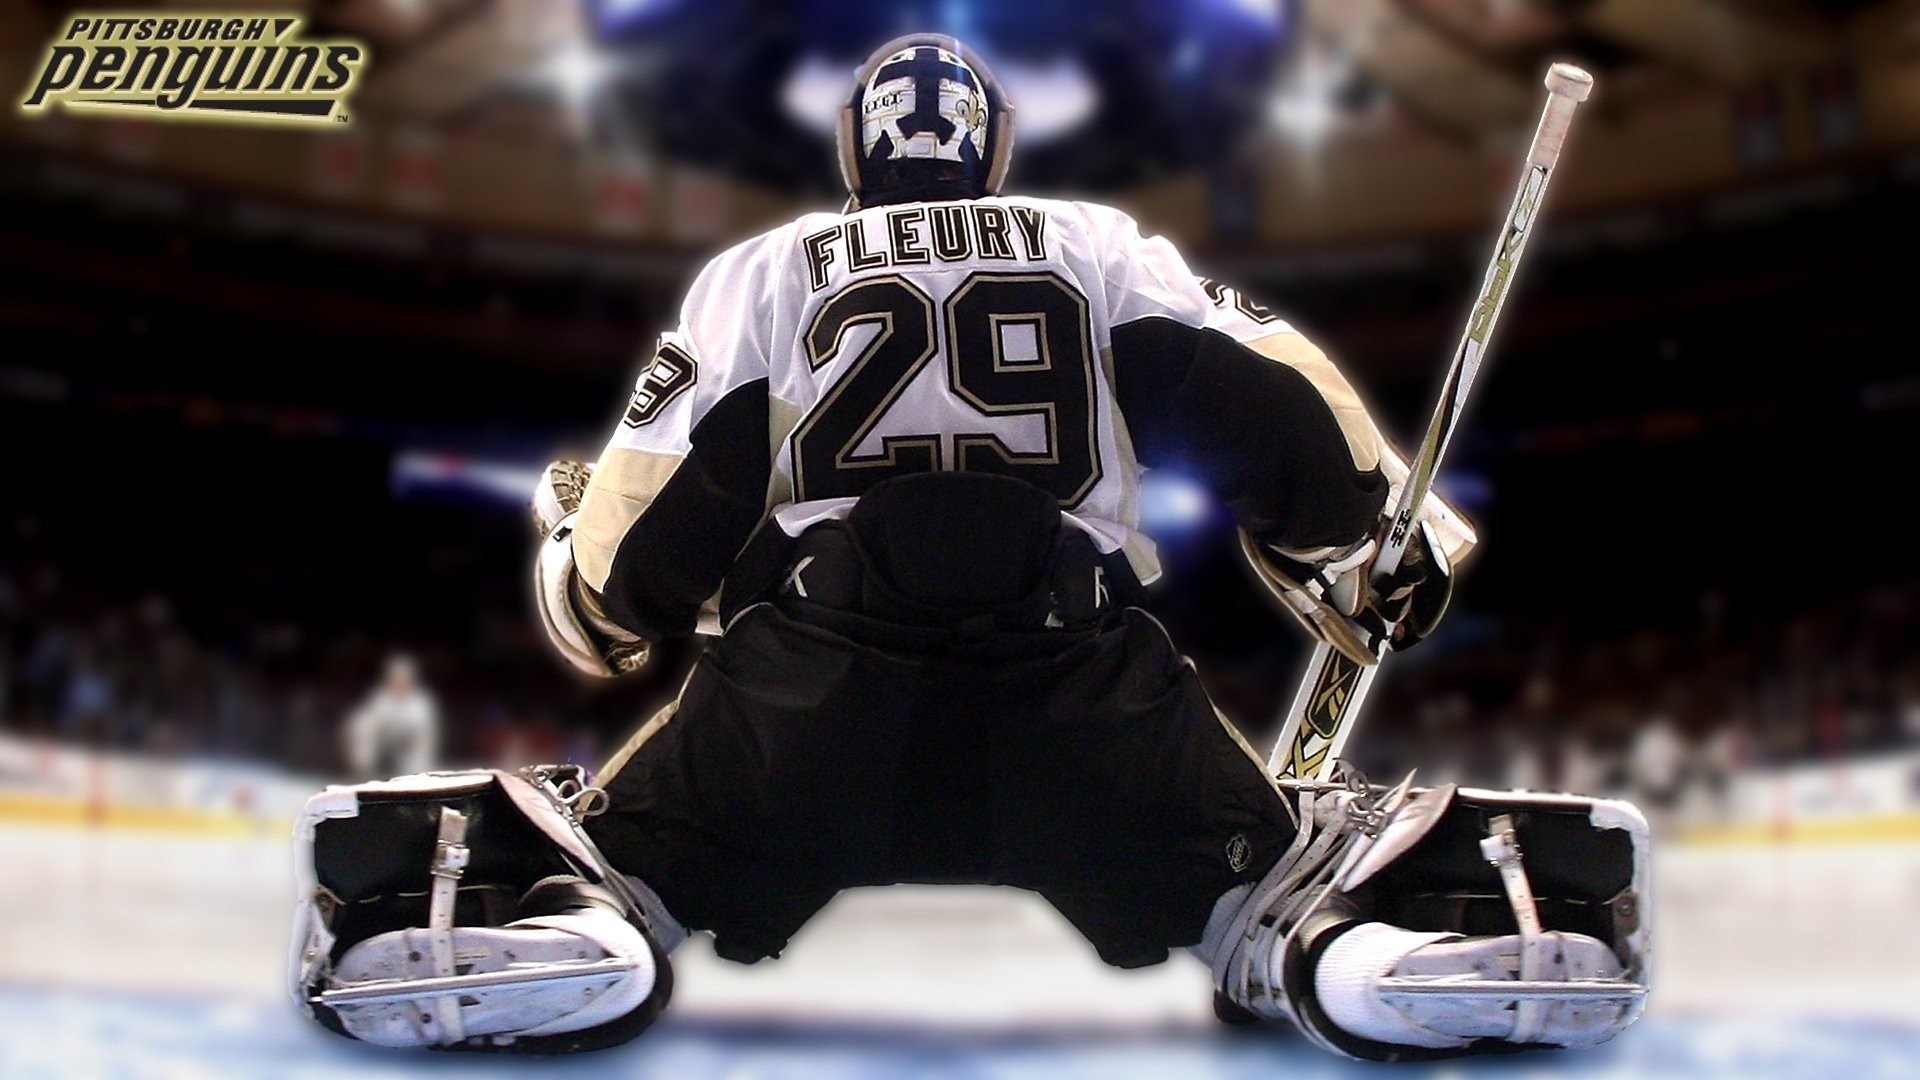 1920x1080 Pittsburgh Penguins Marc Andre Fleury